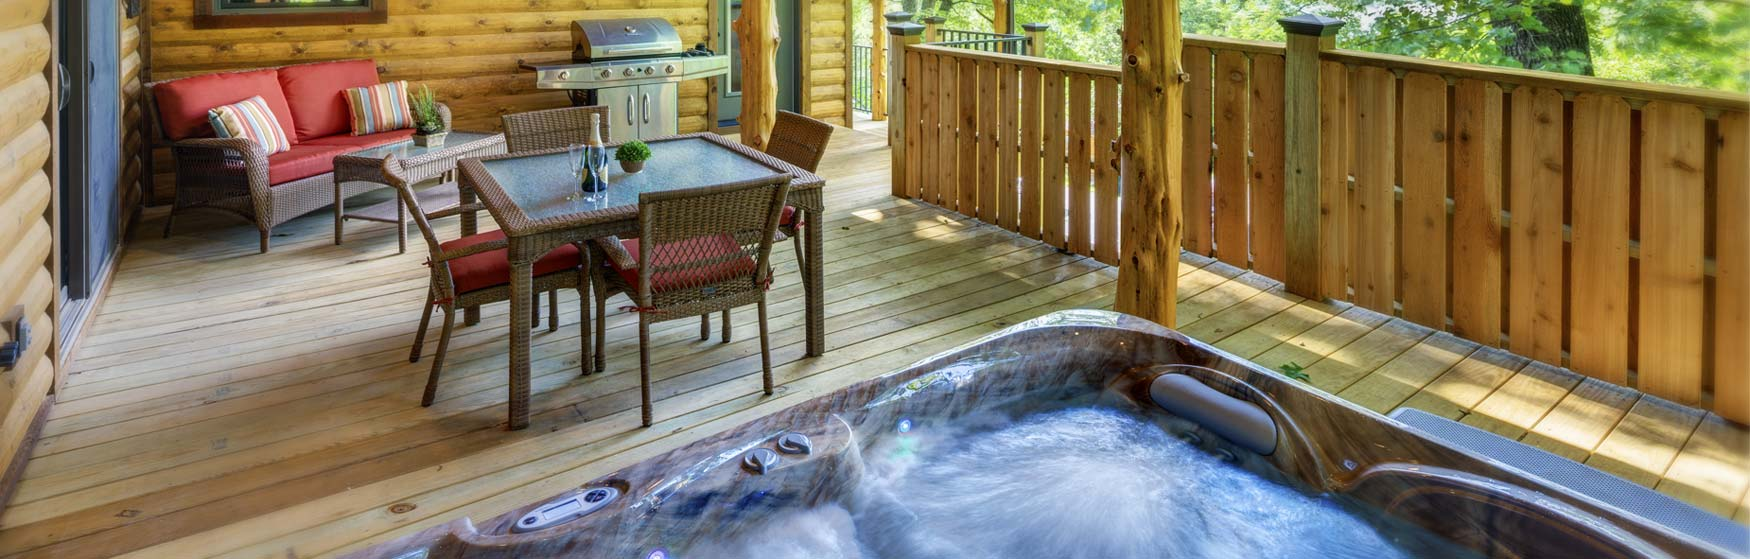 Eureka Springs Cabins Eureka Springs Ar Lake Forest -